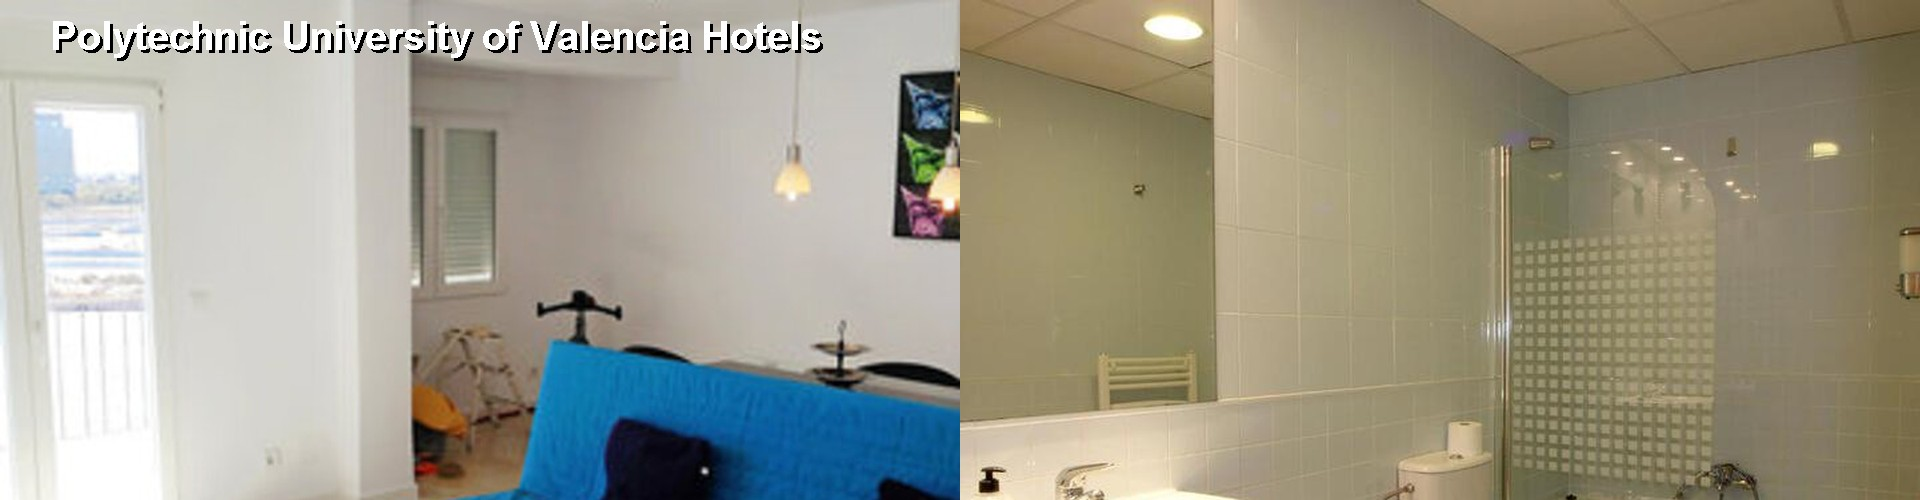 5 Best Hotels near Polytechnic University of Valencia